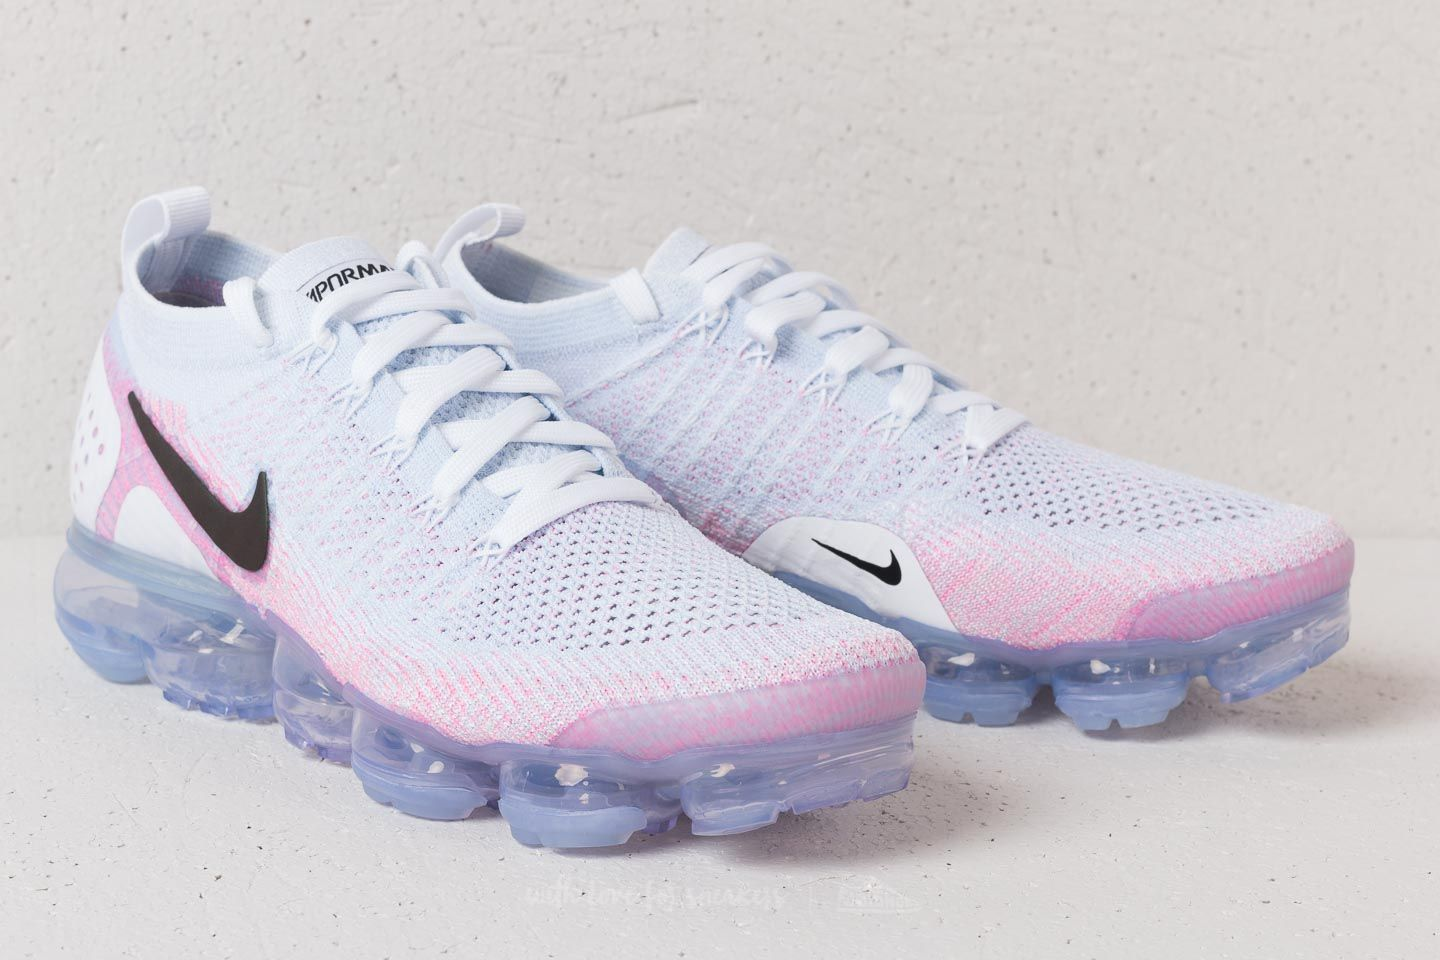 new style 43a3c c889c Nike Air Vapormax Flyknit 2